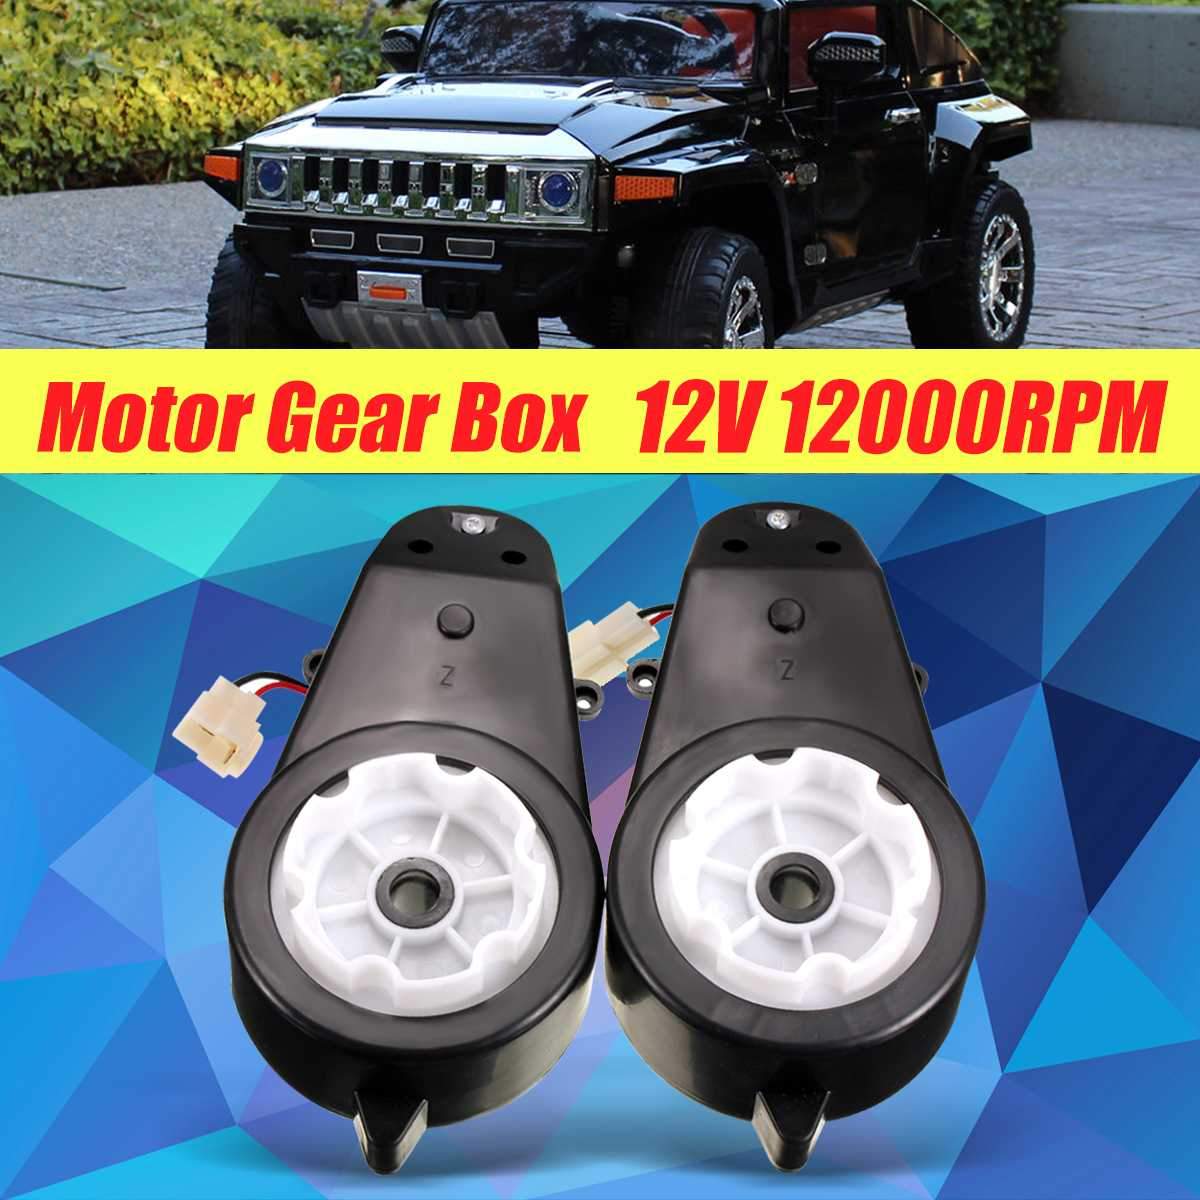 2pcs 12V 20~45W 12000 RPM Motor Gear Box For Kids Ride On Car for BMW for Audi TT Hummer for Land Rover for Jeep2pcs 12V 20~45W 12000 RPM Motor Gear Box For Kids Ride On Car for BMW for Audi TT Hummer for Land Rover for Jeep